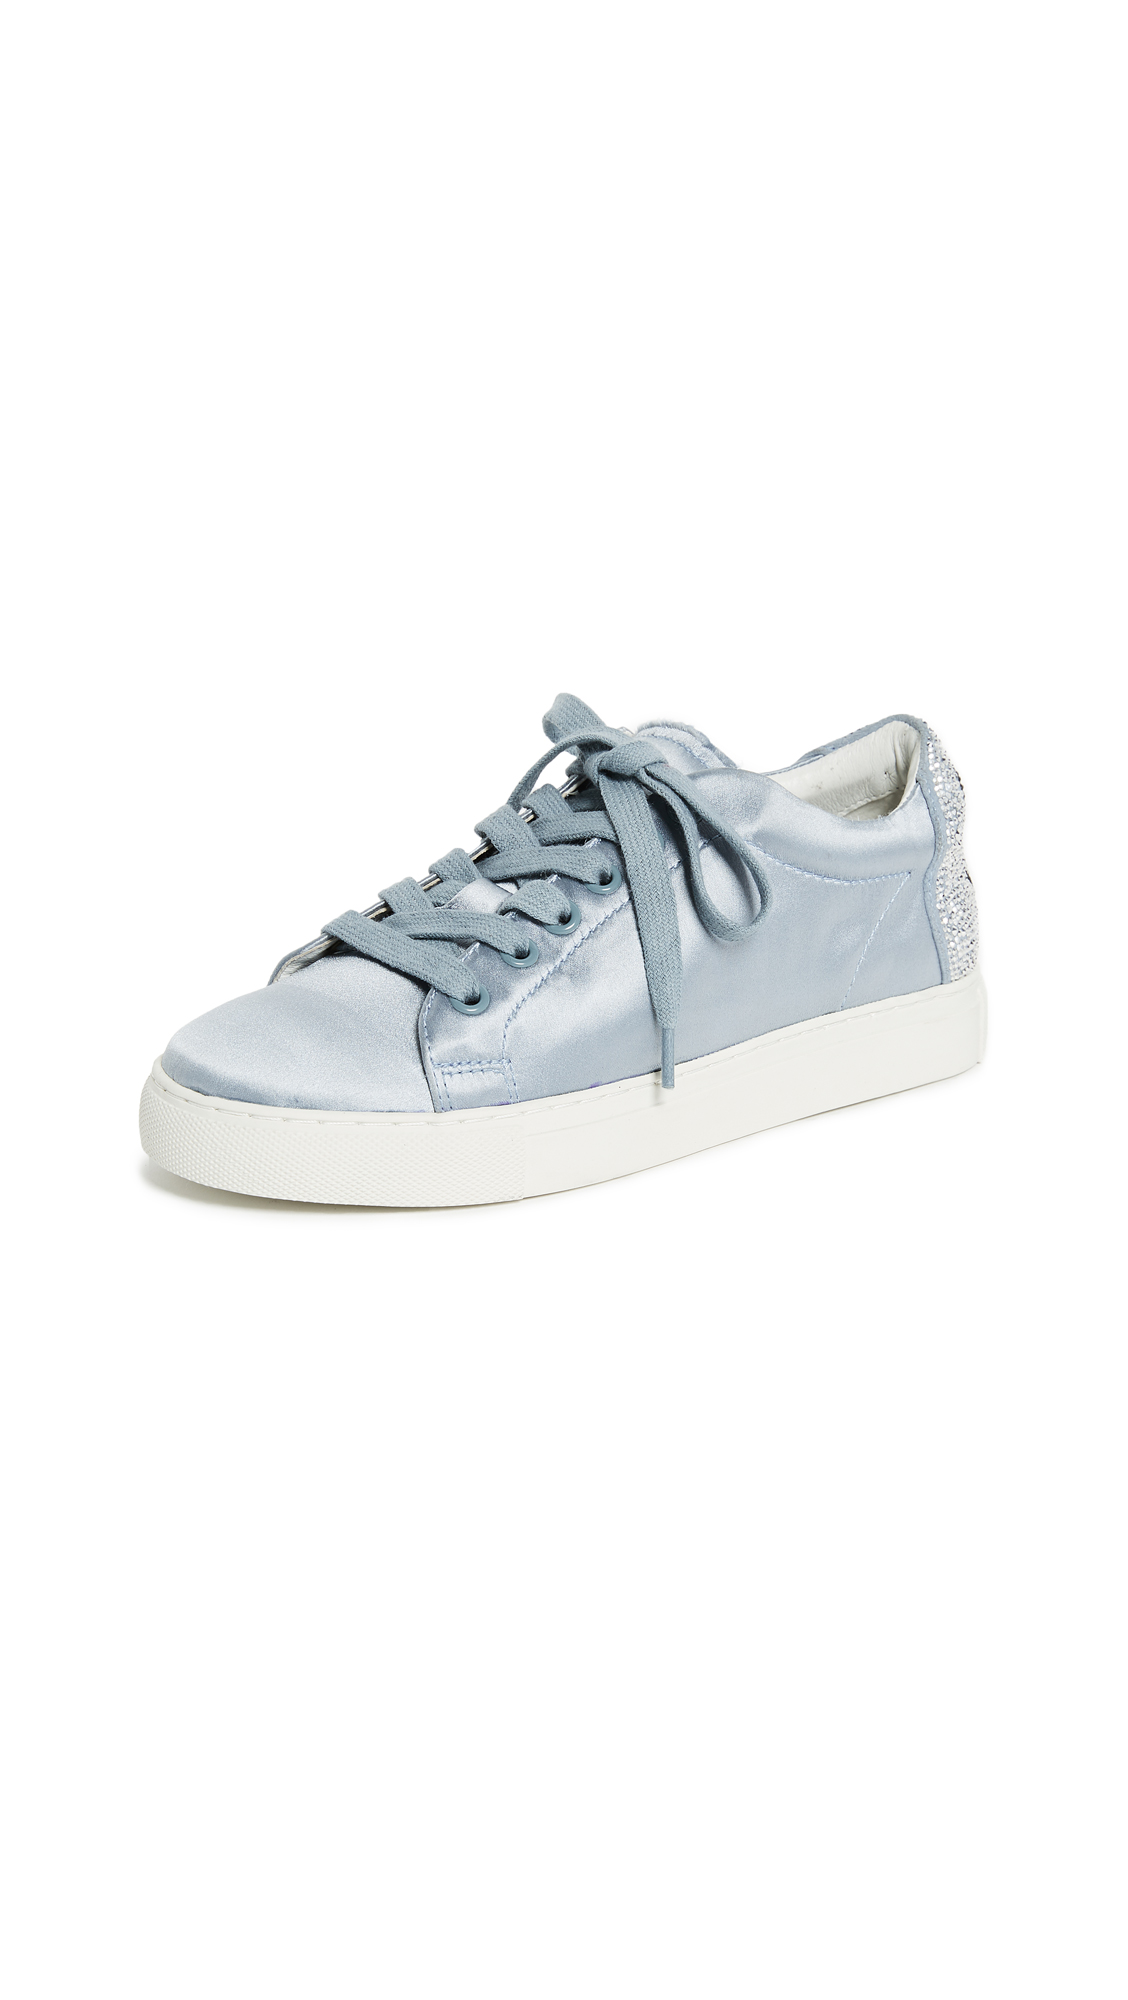 ONE by Wink Sneakers - Celeste